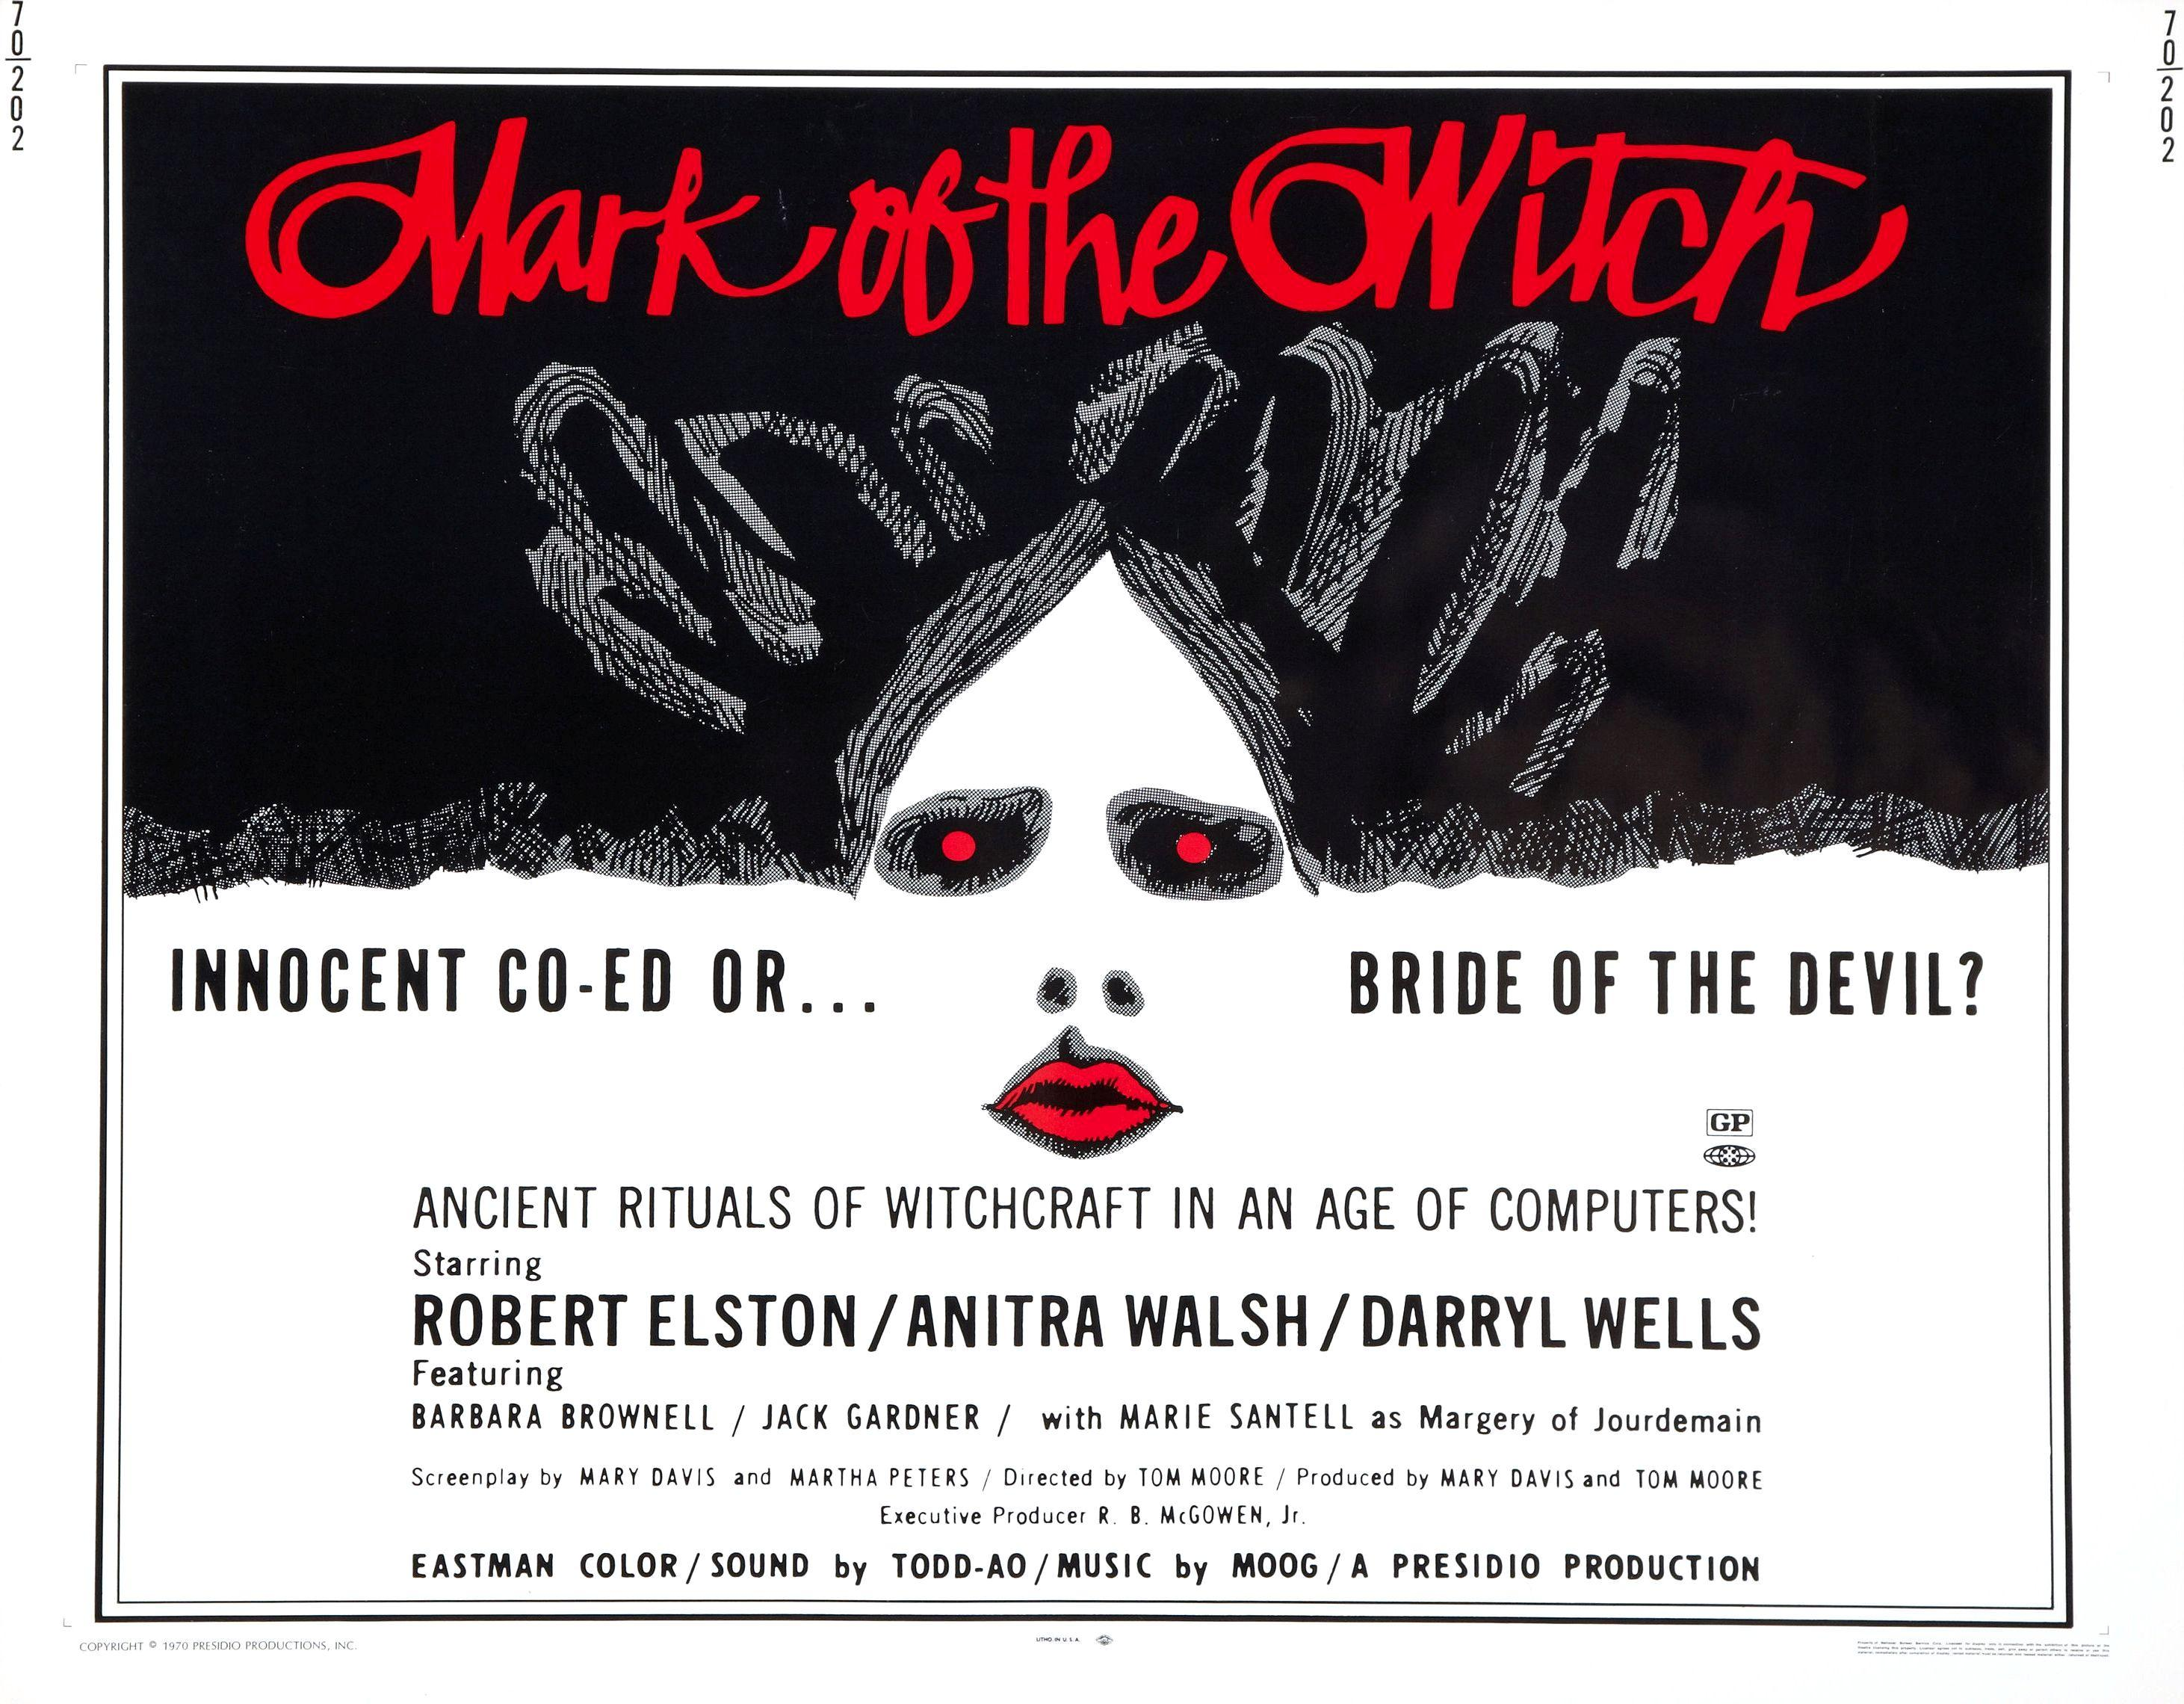 mark_of_witch_poster_01.jpg (2923×2280)